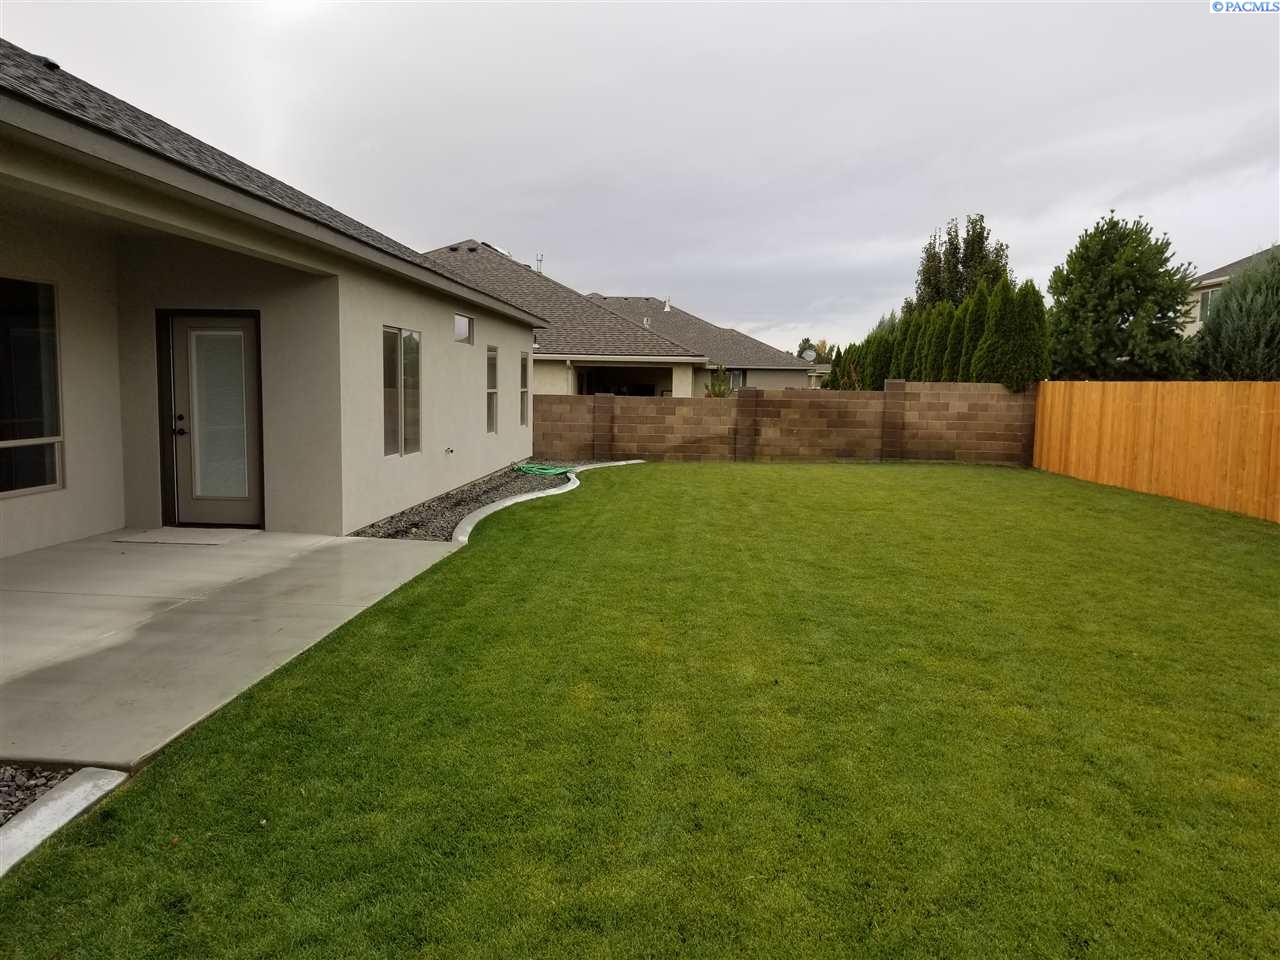 Additional photo for property listing at 3908 W 47th Avenue 3908 W 47th Avenue Kennewick, Washington 99337 United States